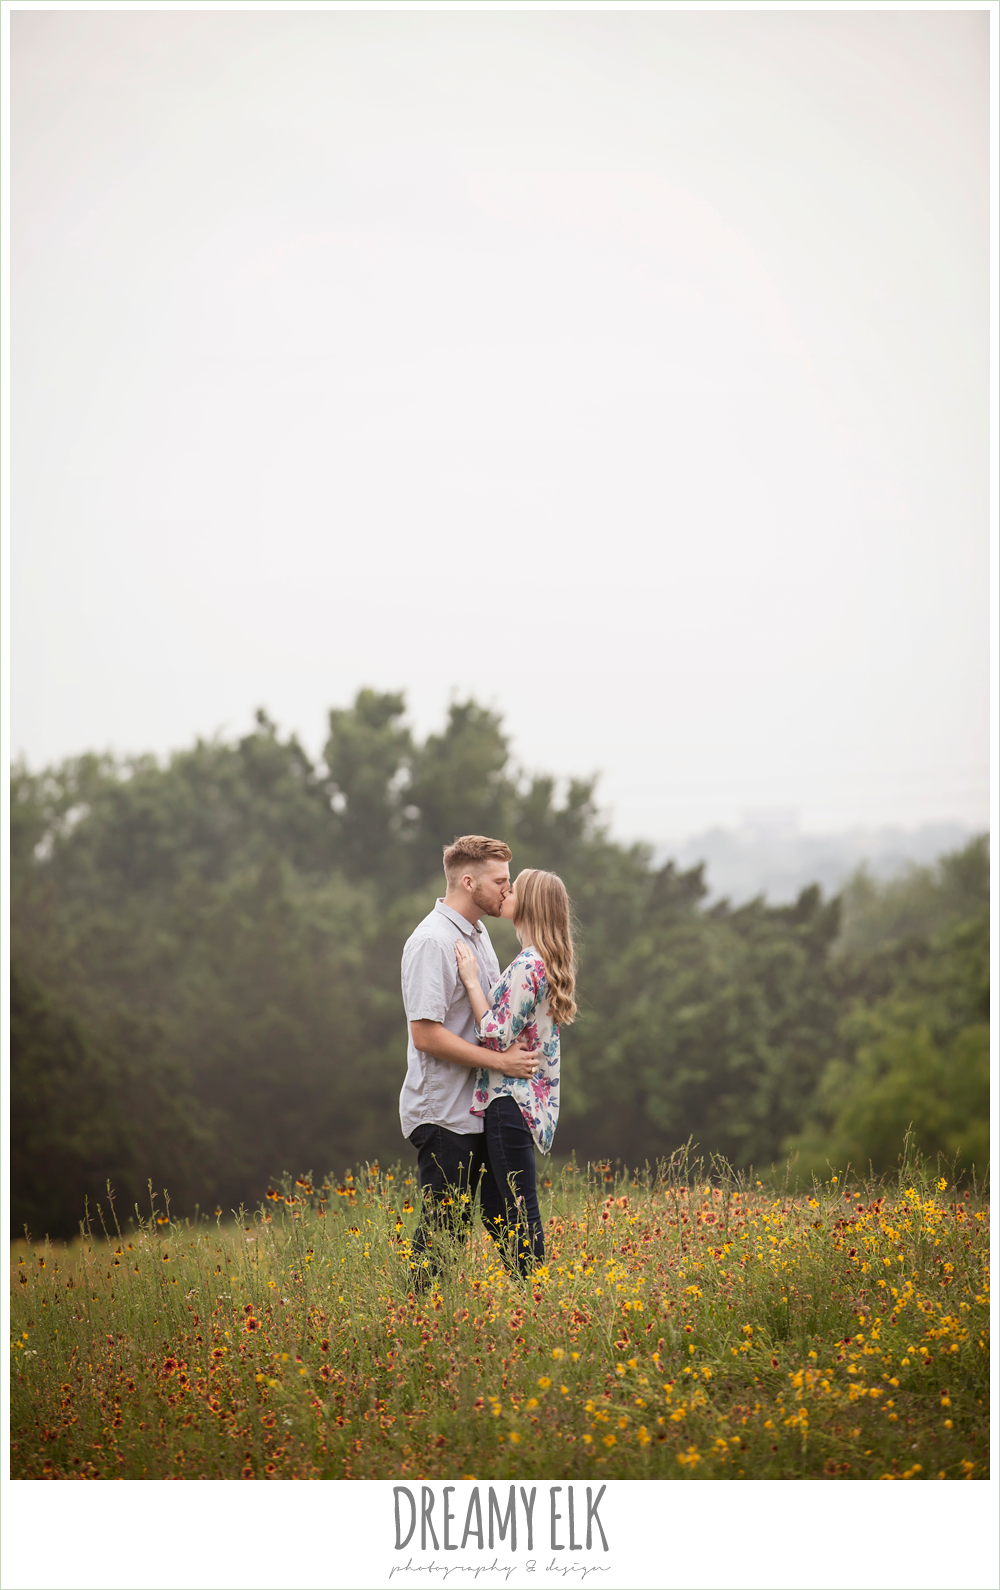 couple kissing in a field of wild flowers, overcast engagement photo, walnut creek park, austin, texas {dreamy elk photography and design}